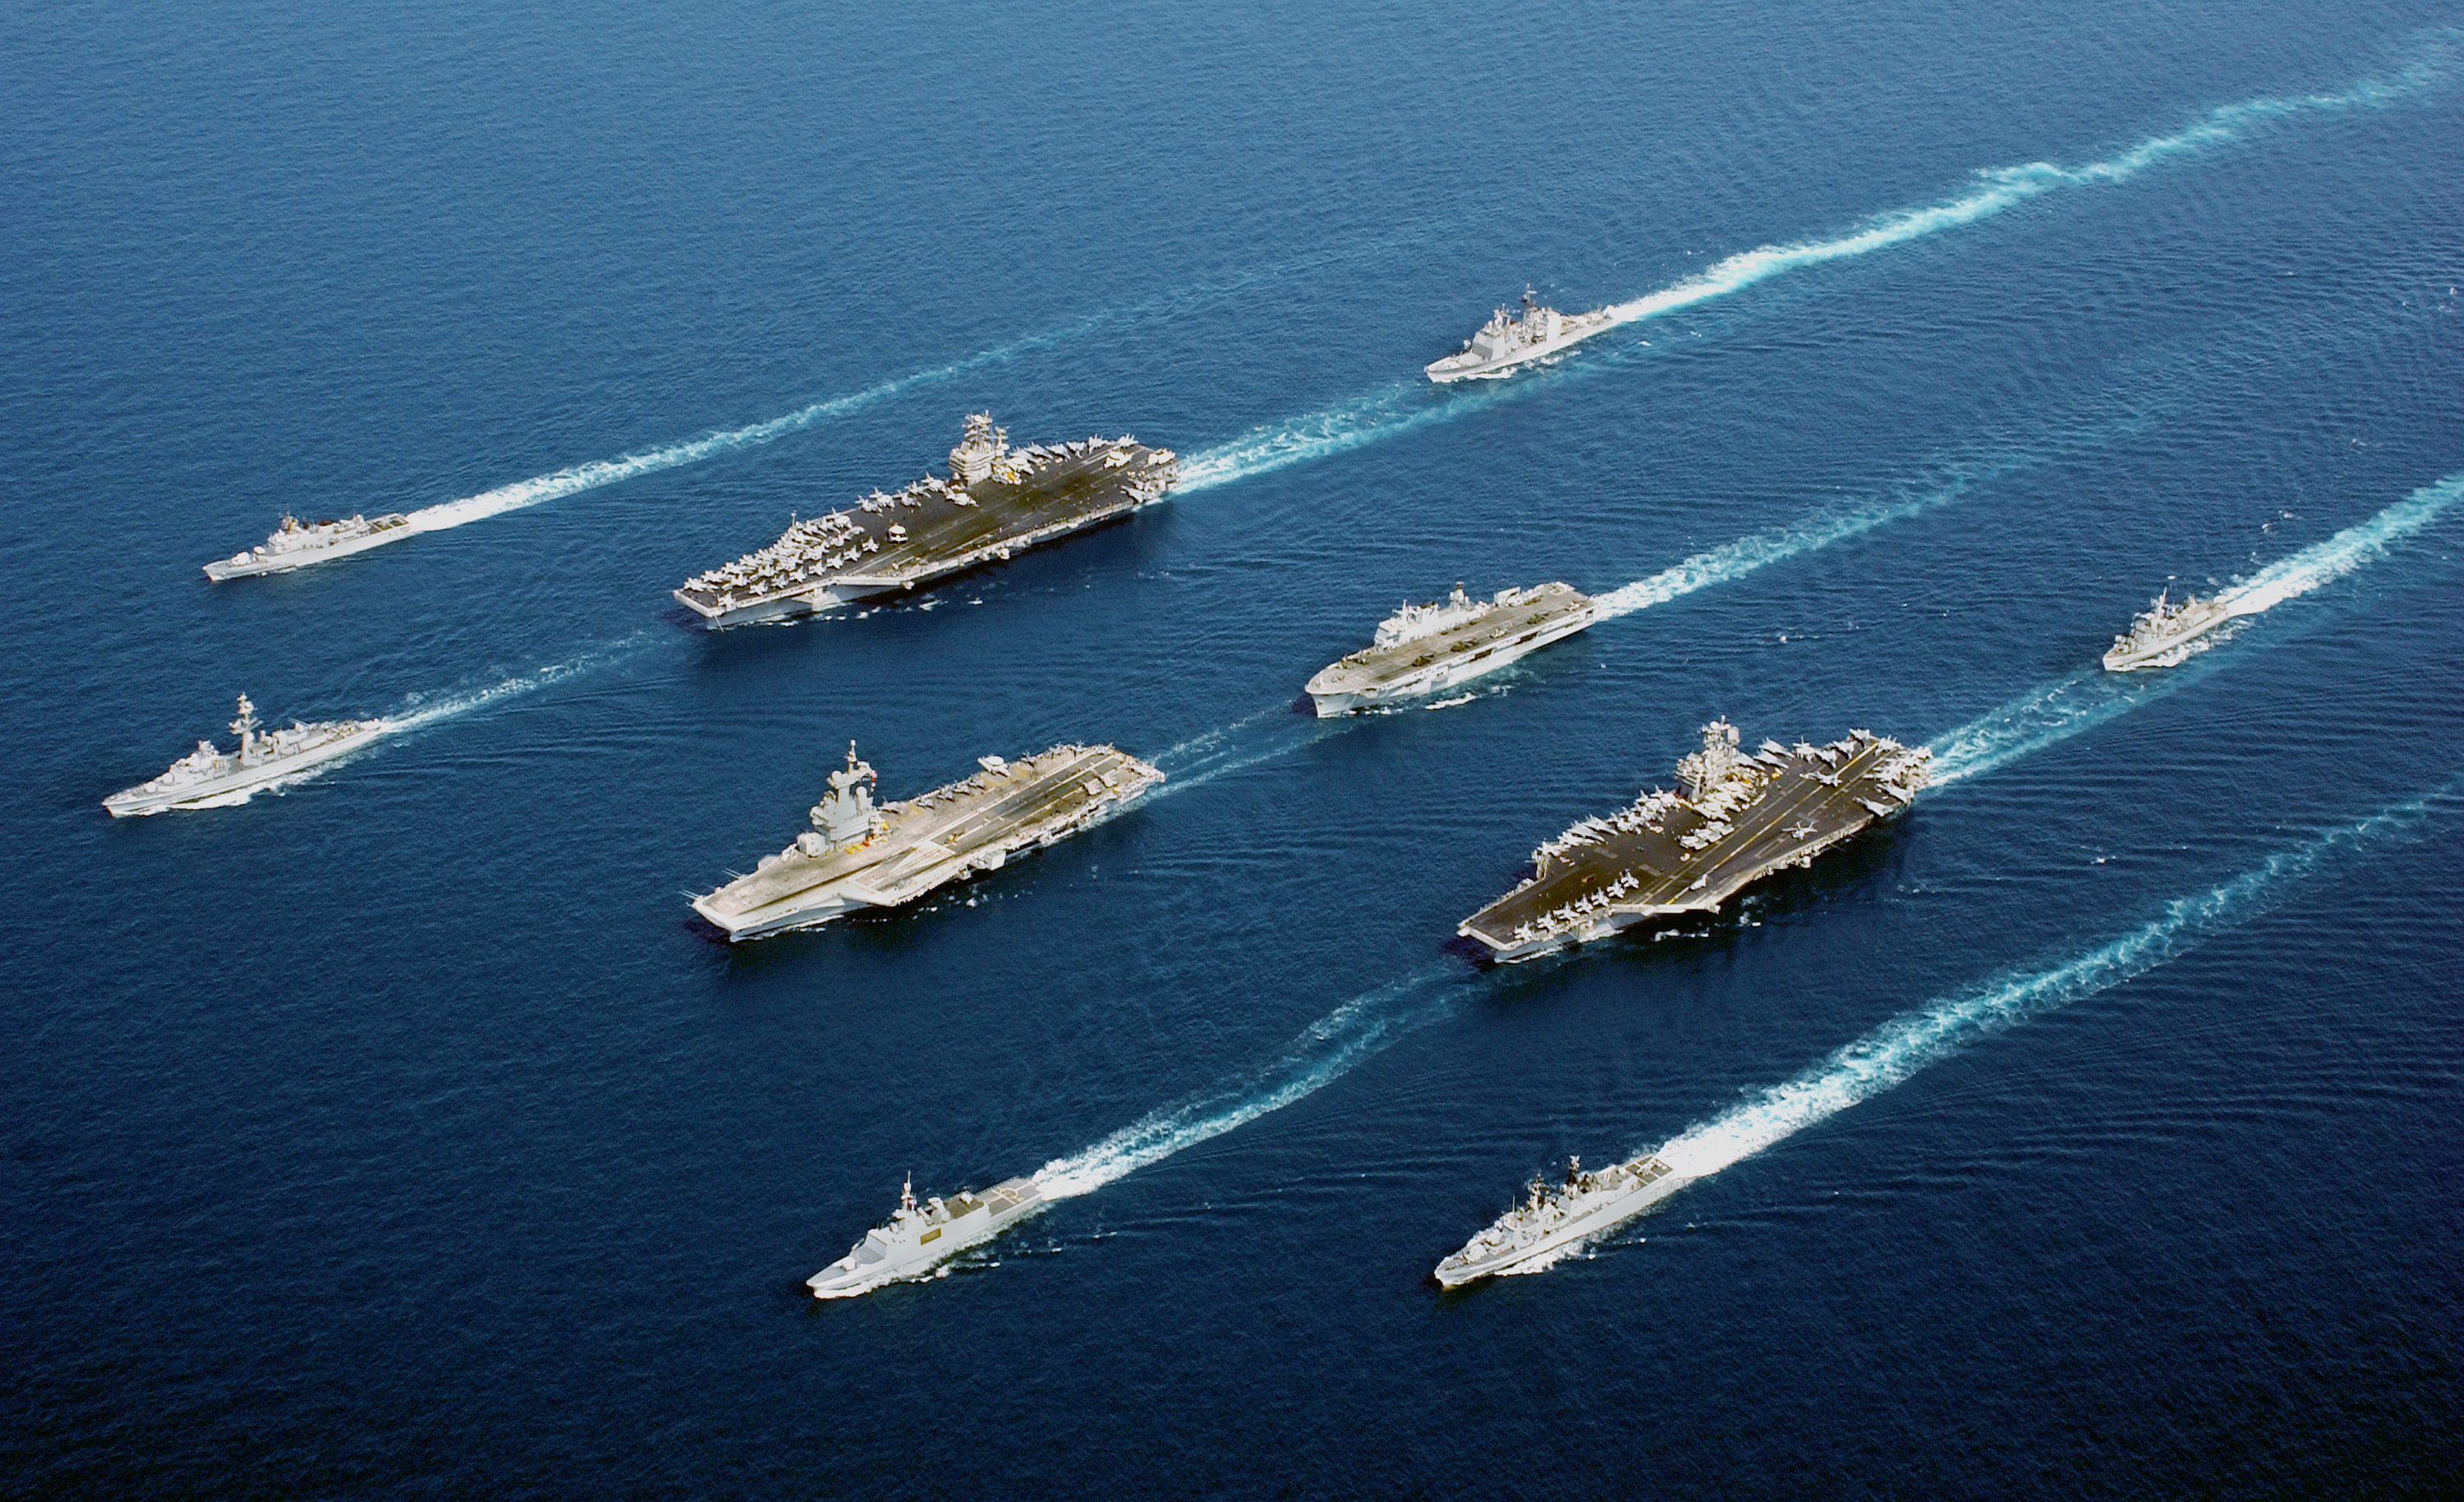 https://upload.wikimedia.org/wikipedia/commons/c/c6/Fleet_5_nations.jpg